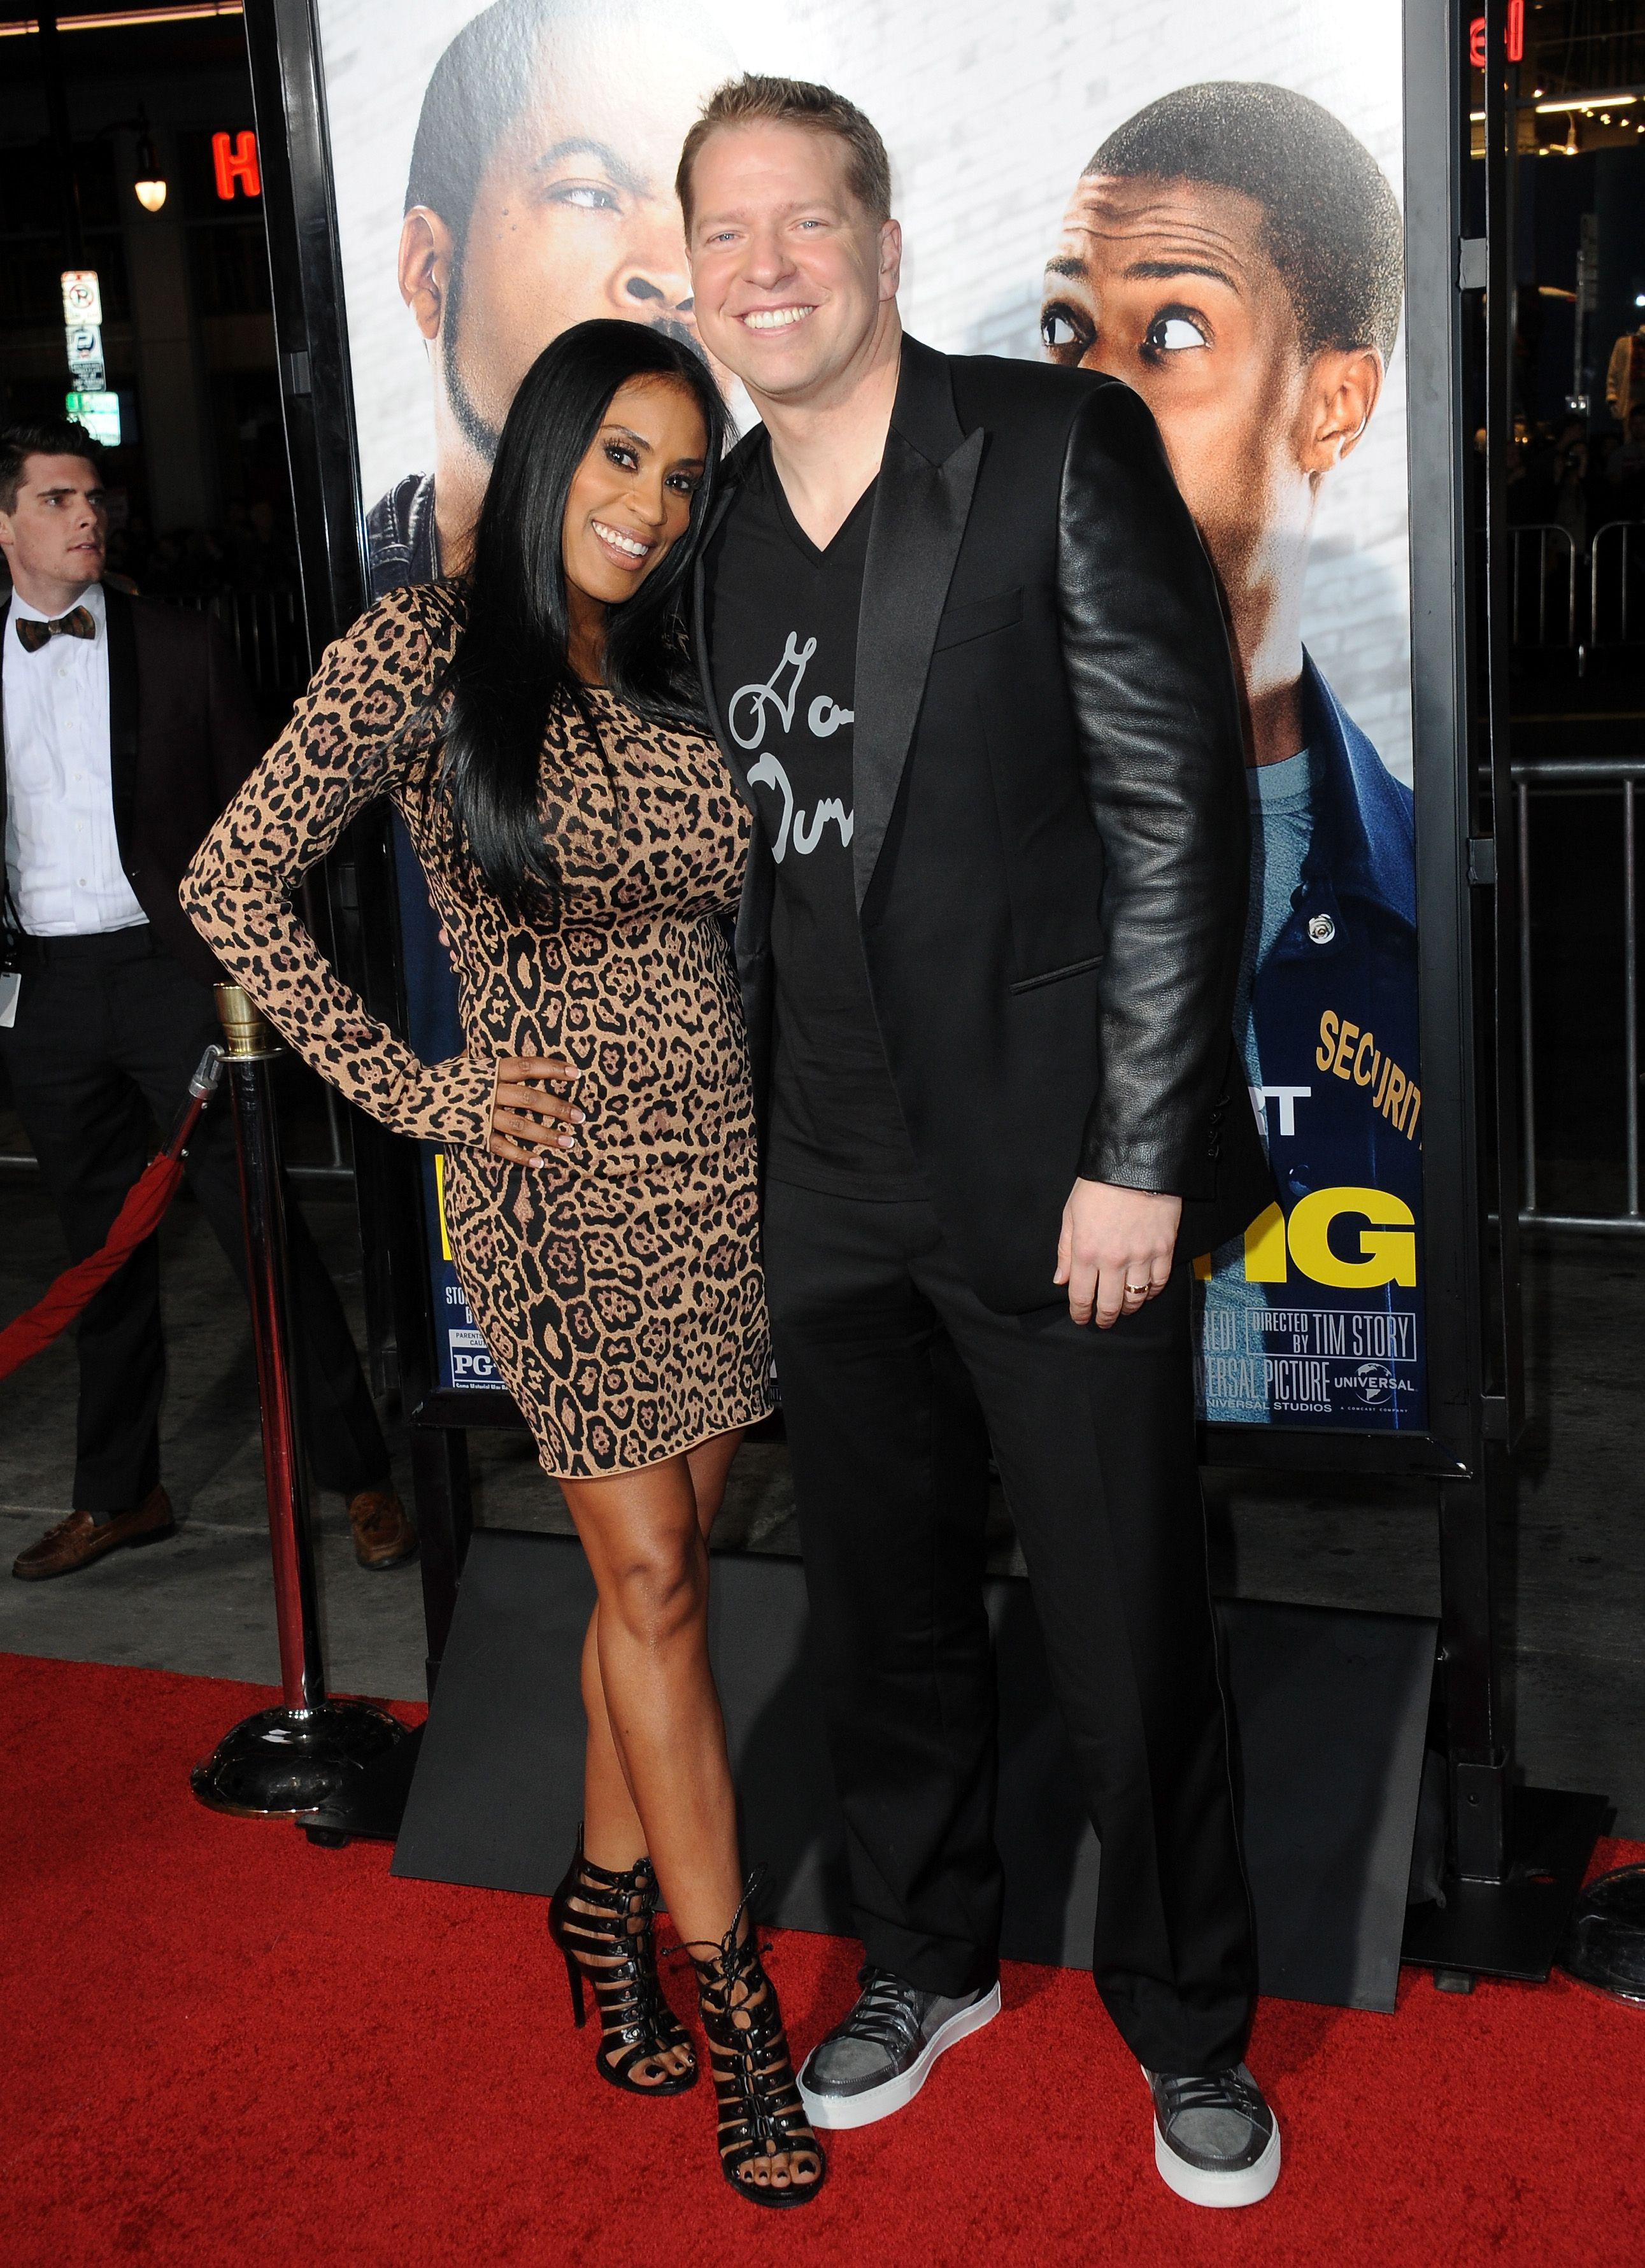 """Kenya Duke and Gary Owen  at the premiere of """"Ride Along"""" on January 13, 2014 in California. 